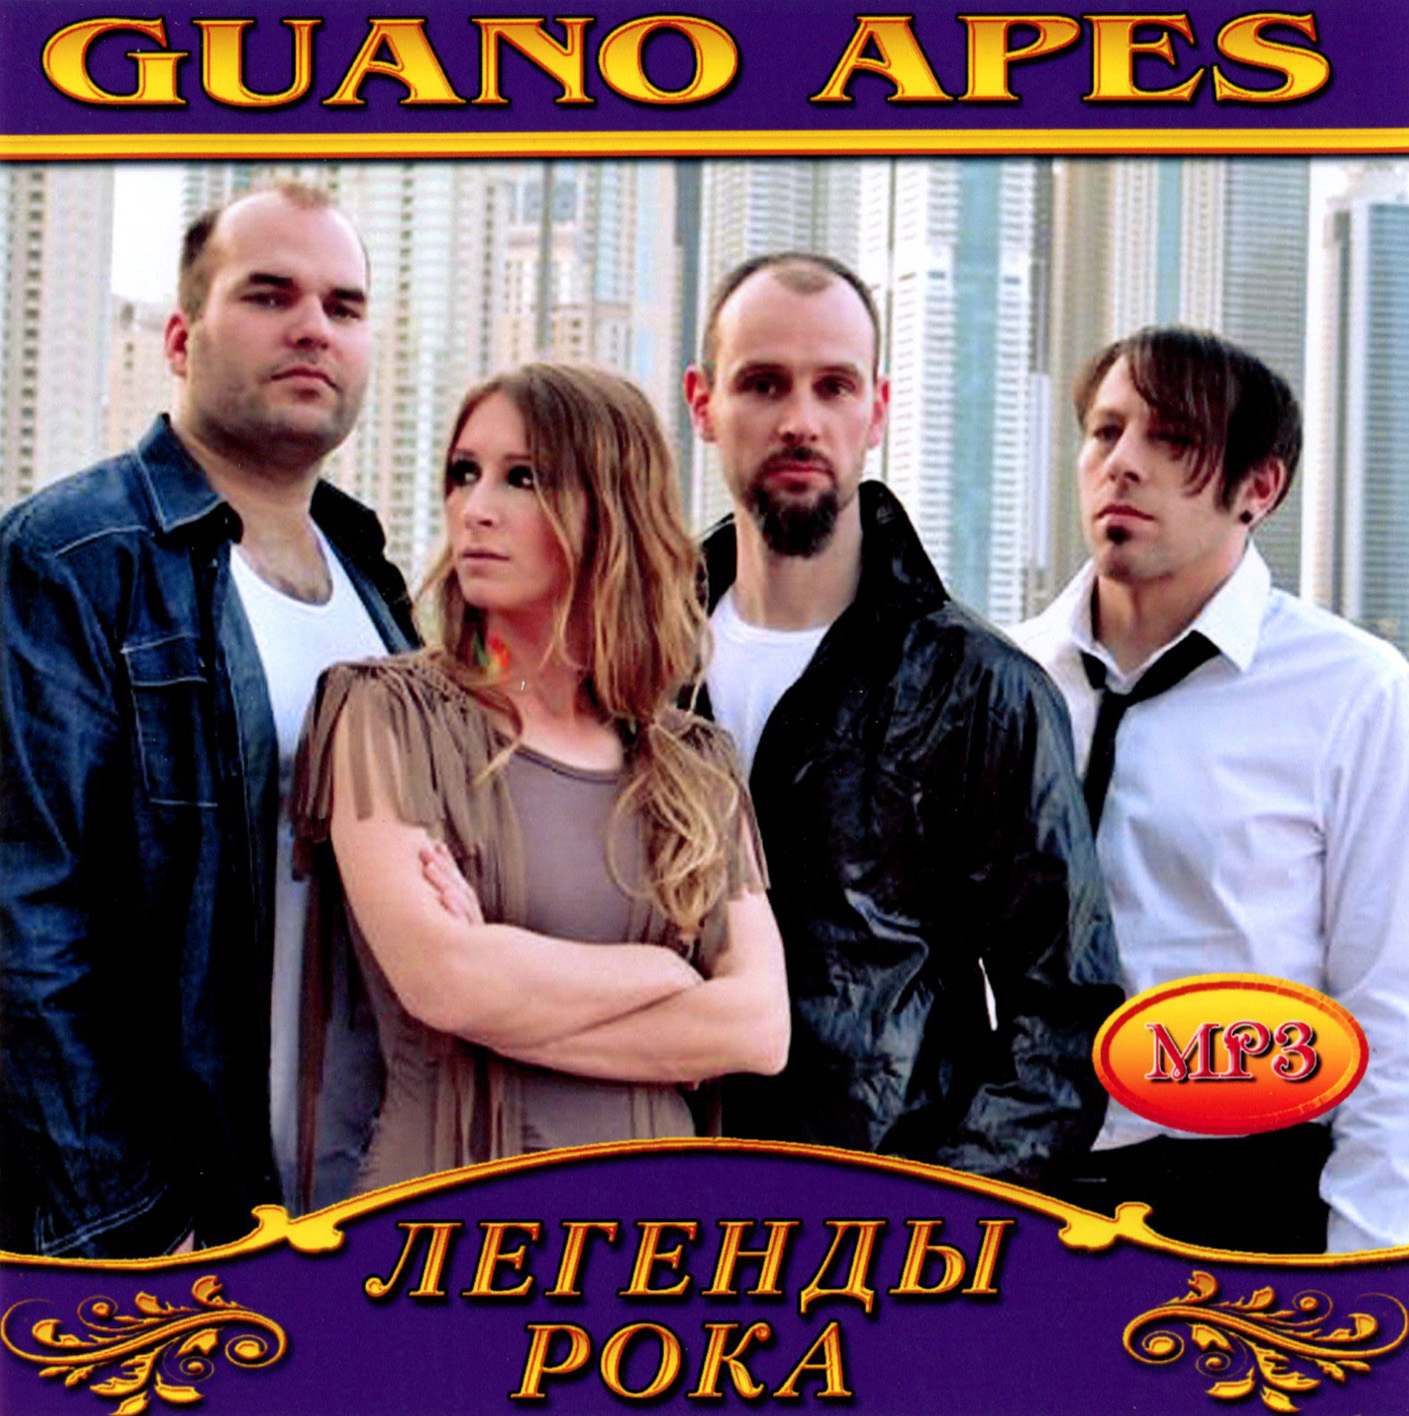 Guano Apes [mp3]